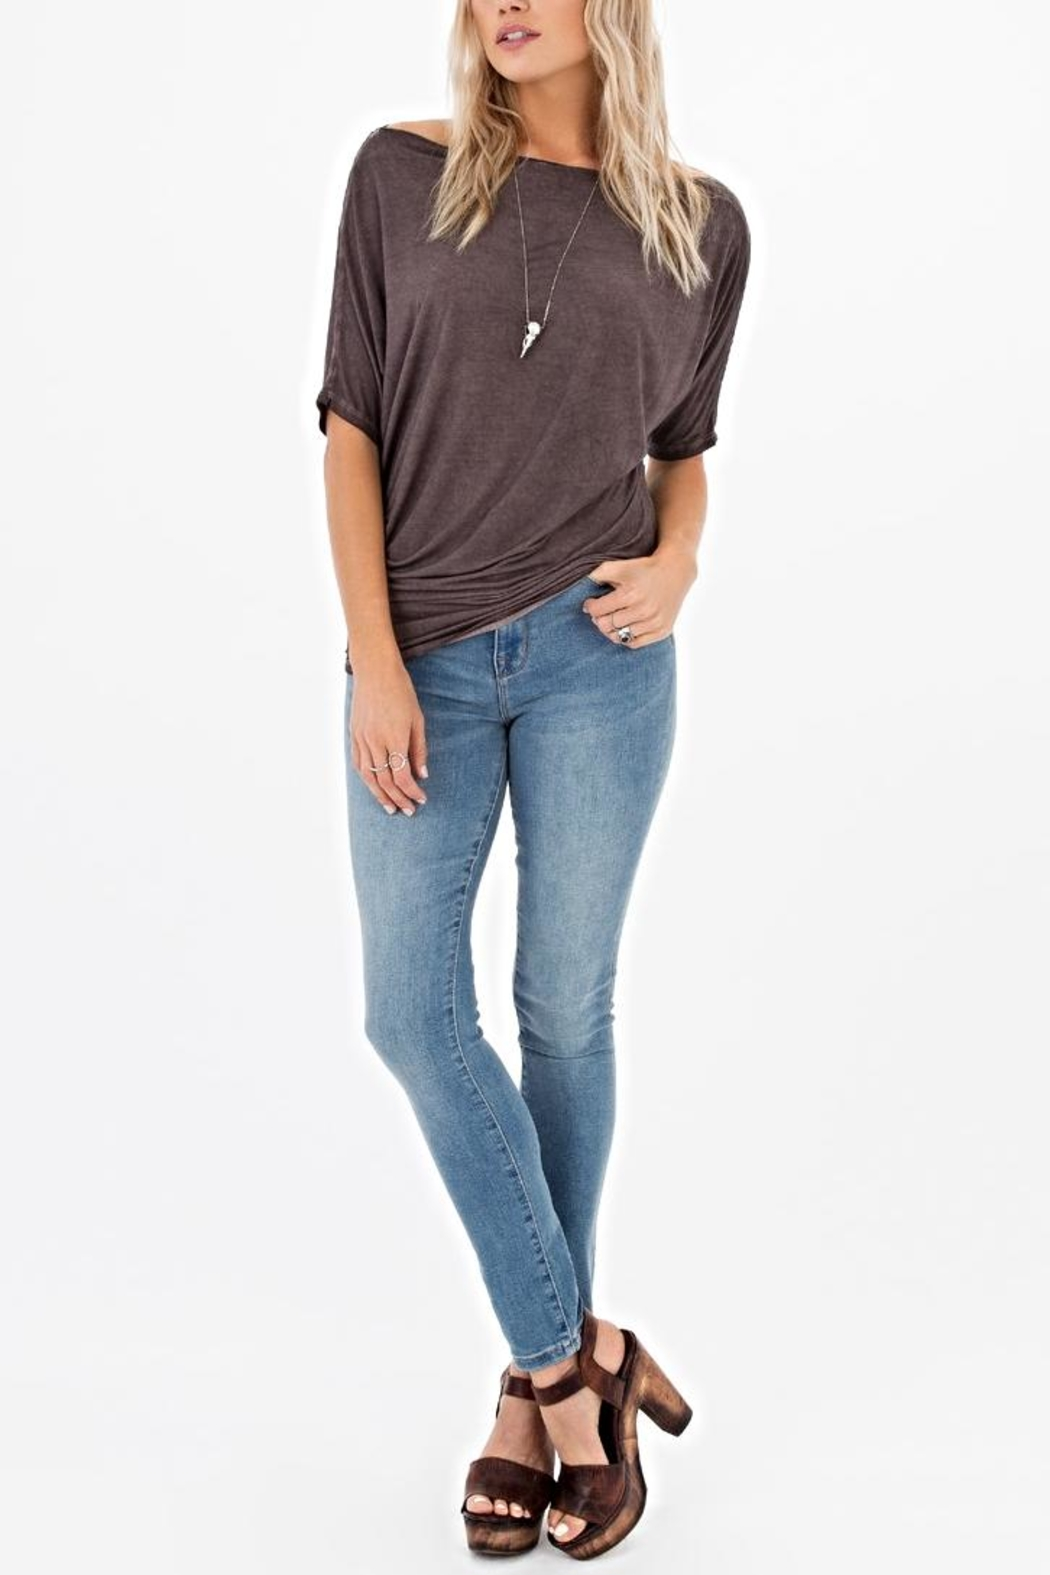 White Crow Boatneck Top - Side Cropped Image